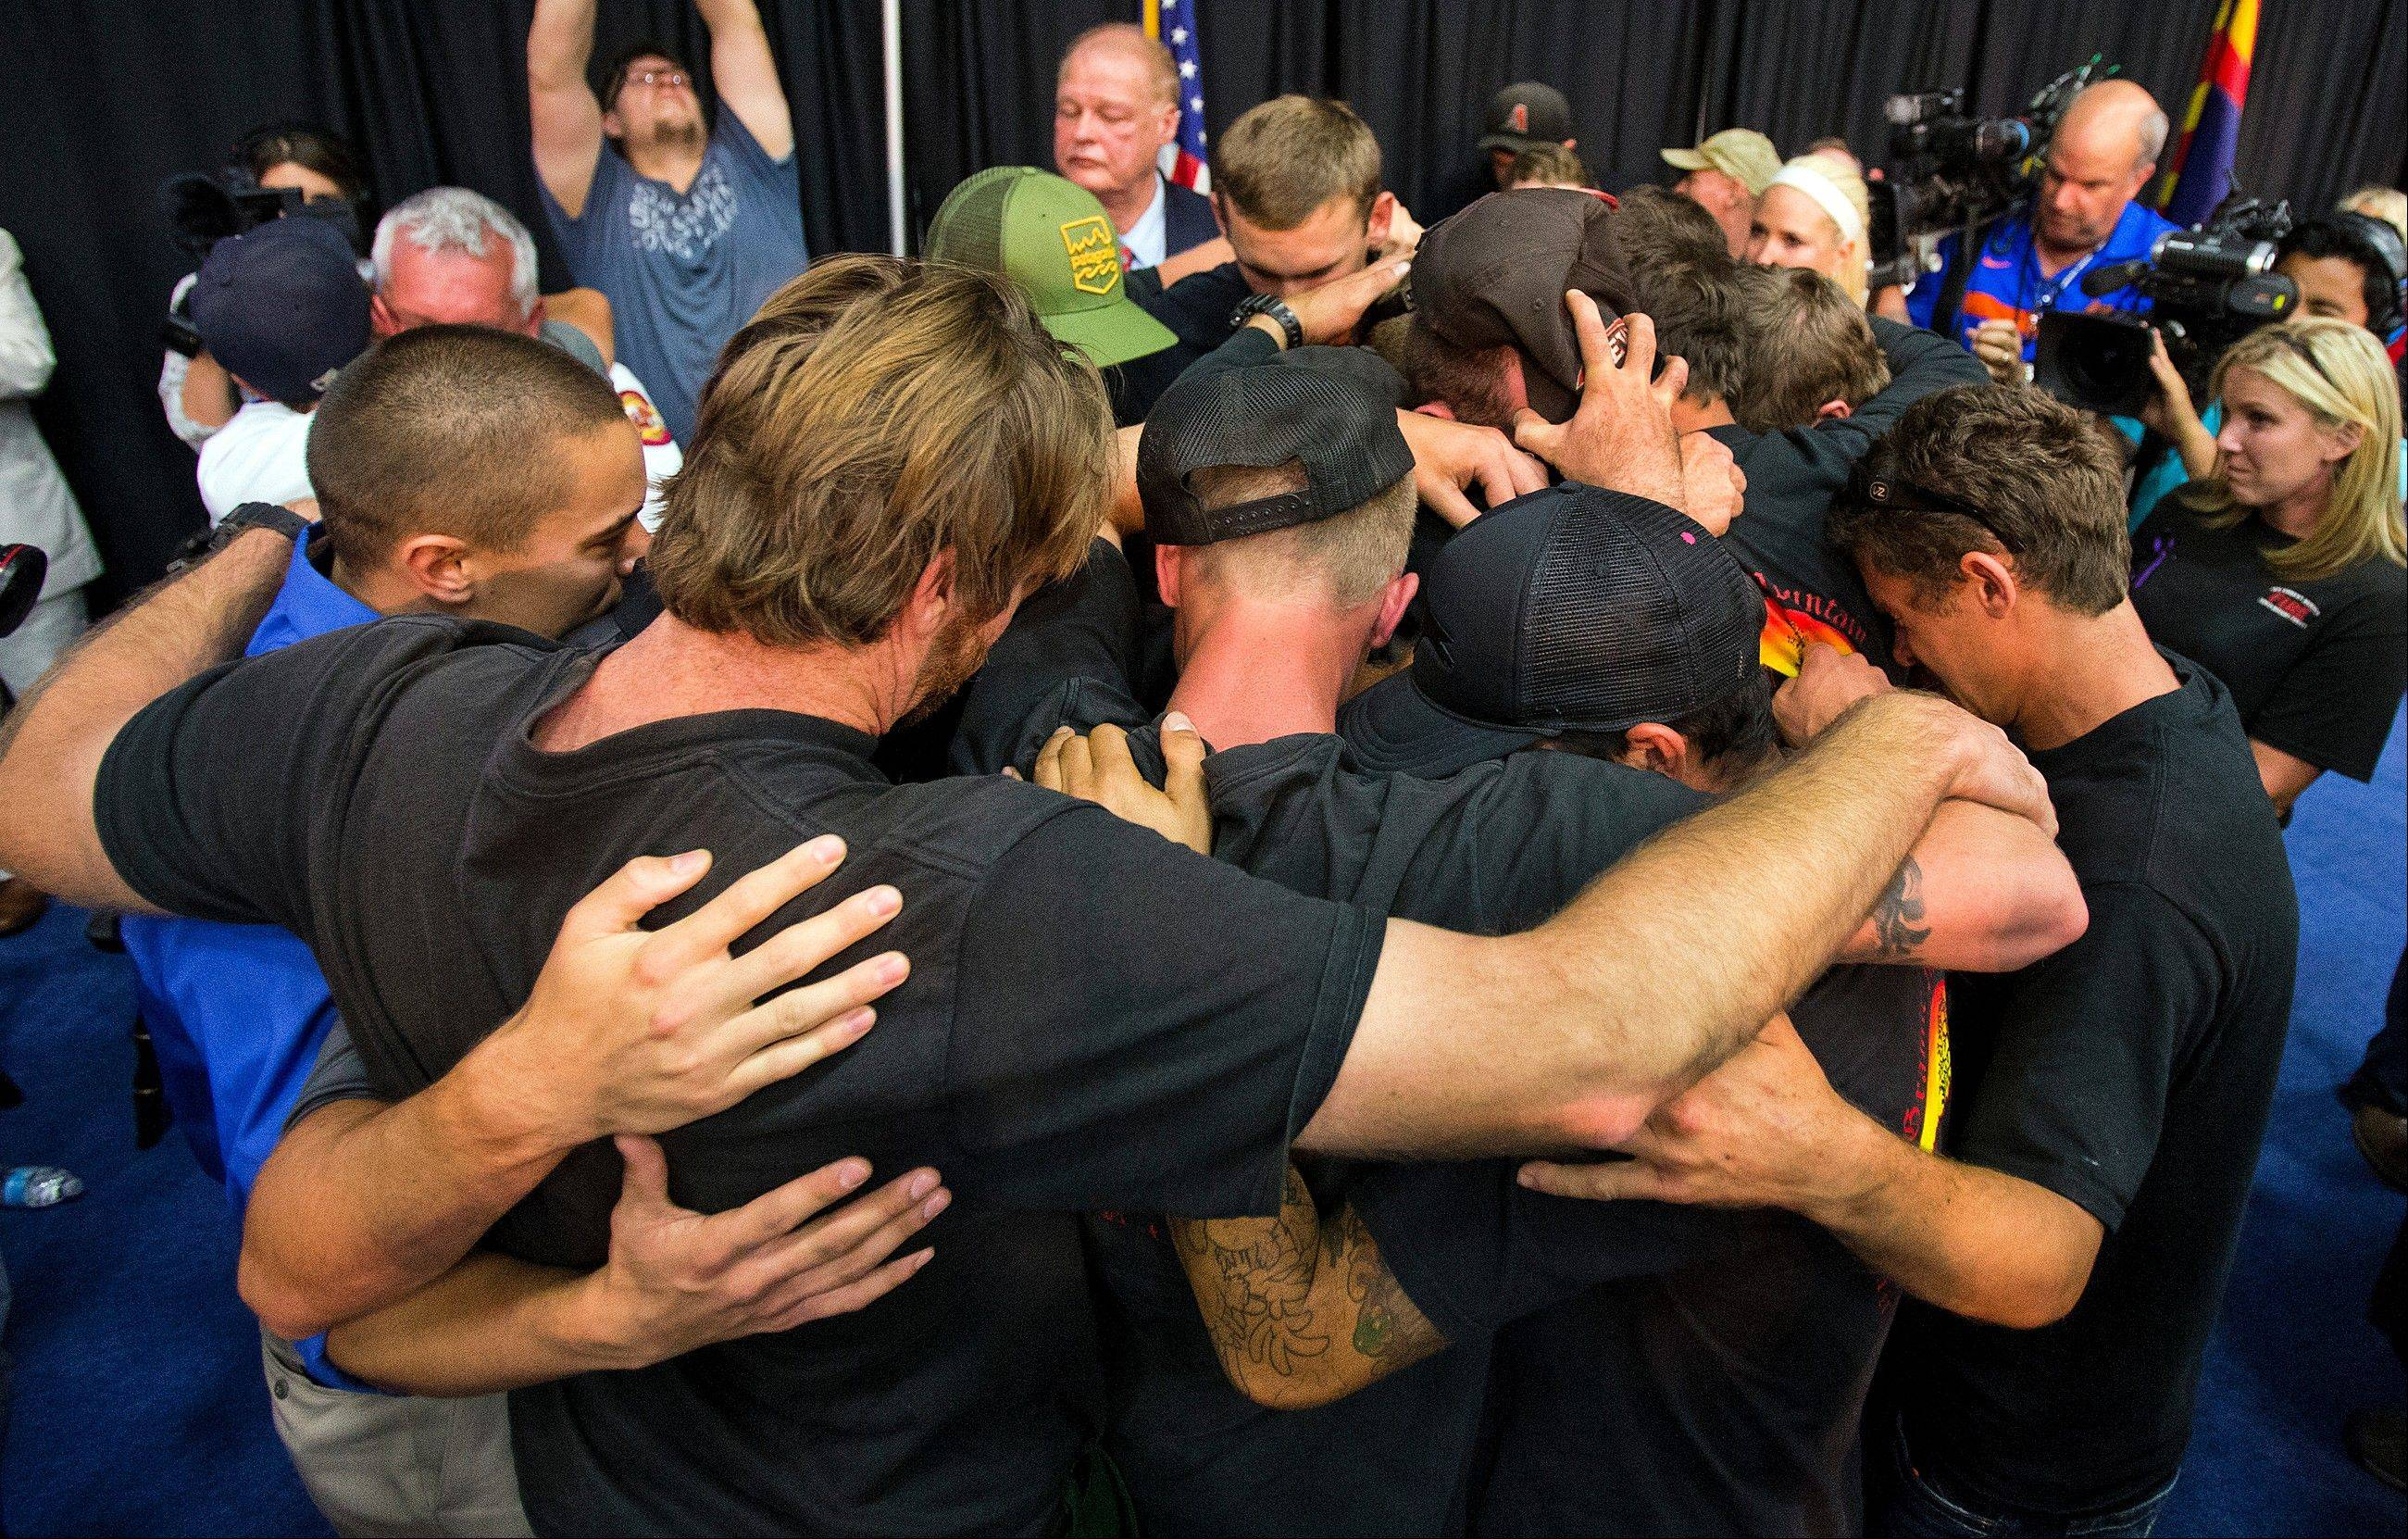 Firefighters gather in an embrace to a standing ovation during a memorial service for 19 firefighters of the Granite Mountain Hotshot Crew that were killed battling a wildfire.